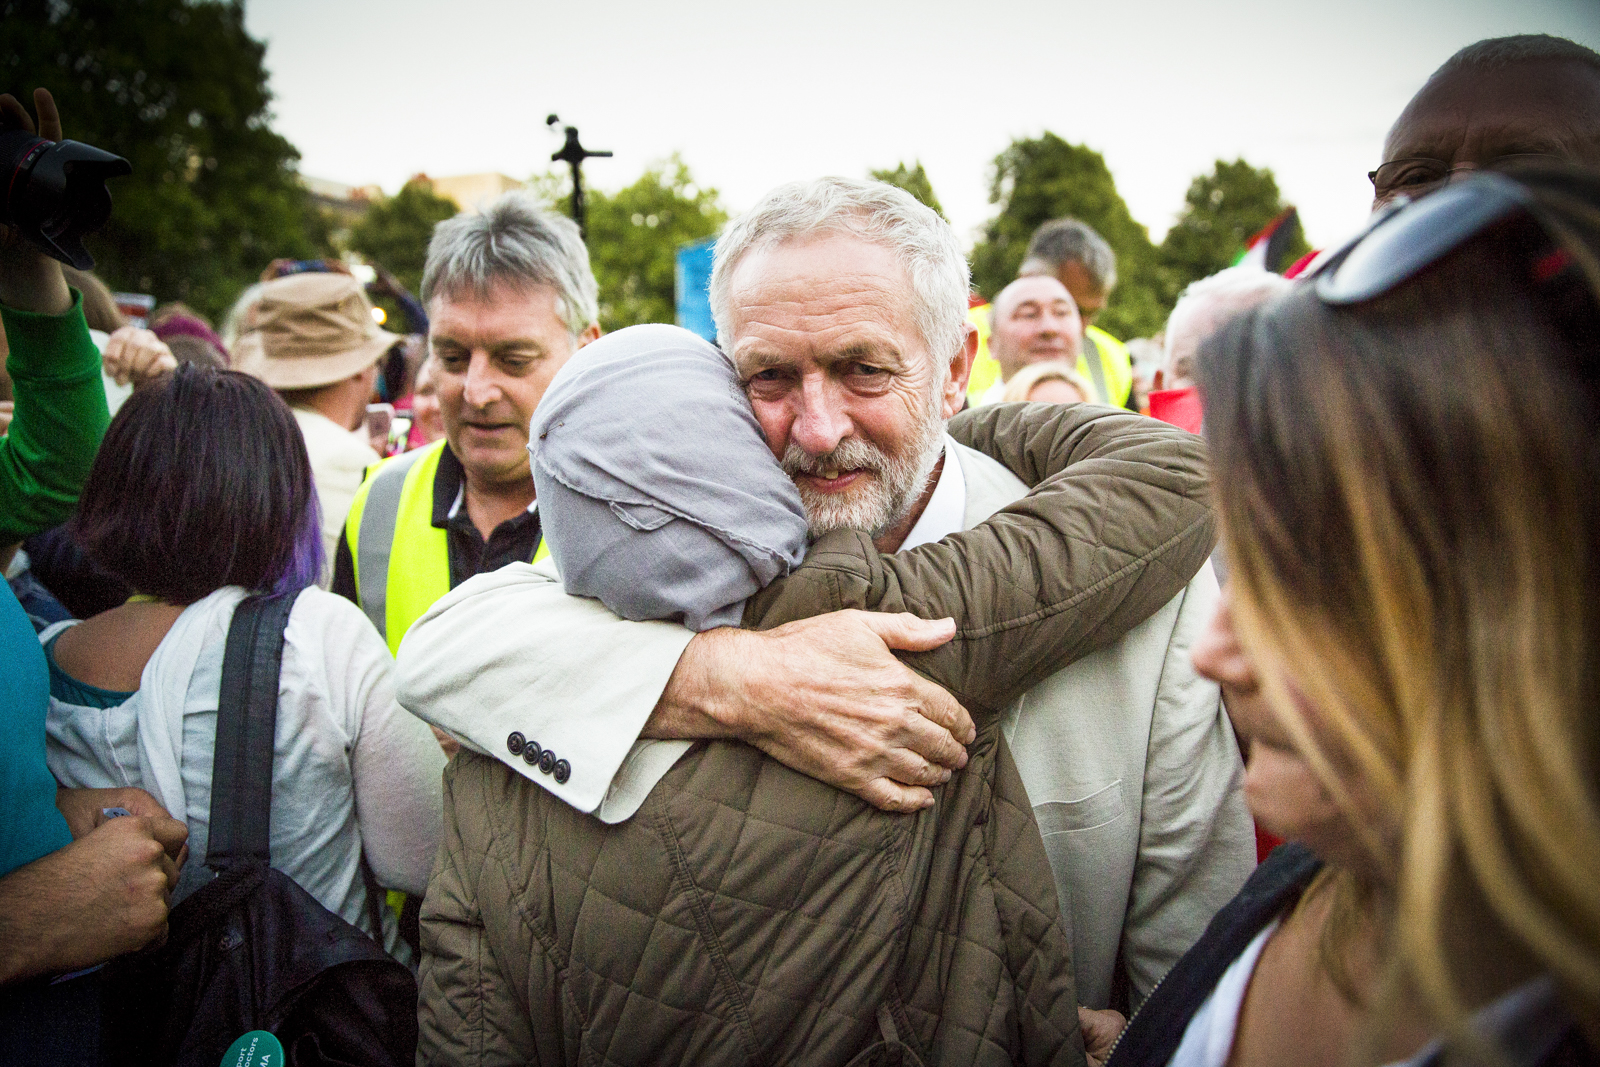 Jeremy Corbyn leaves a leadership rally in Bristol after giving a speech.